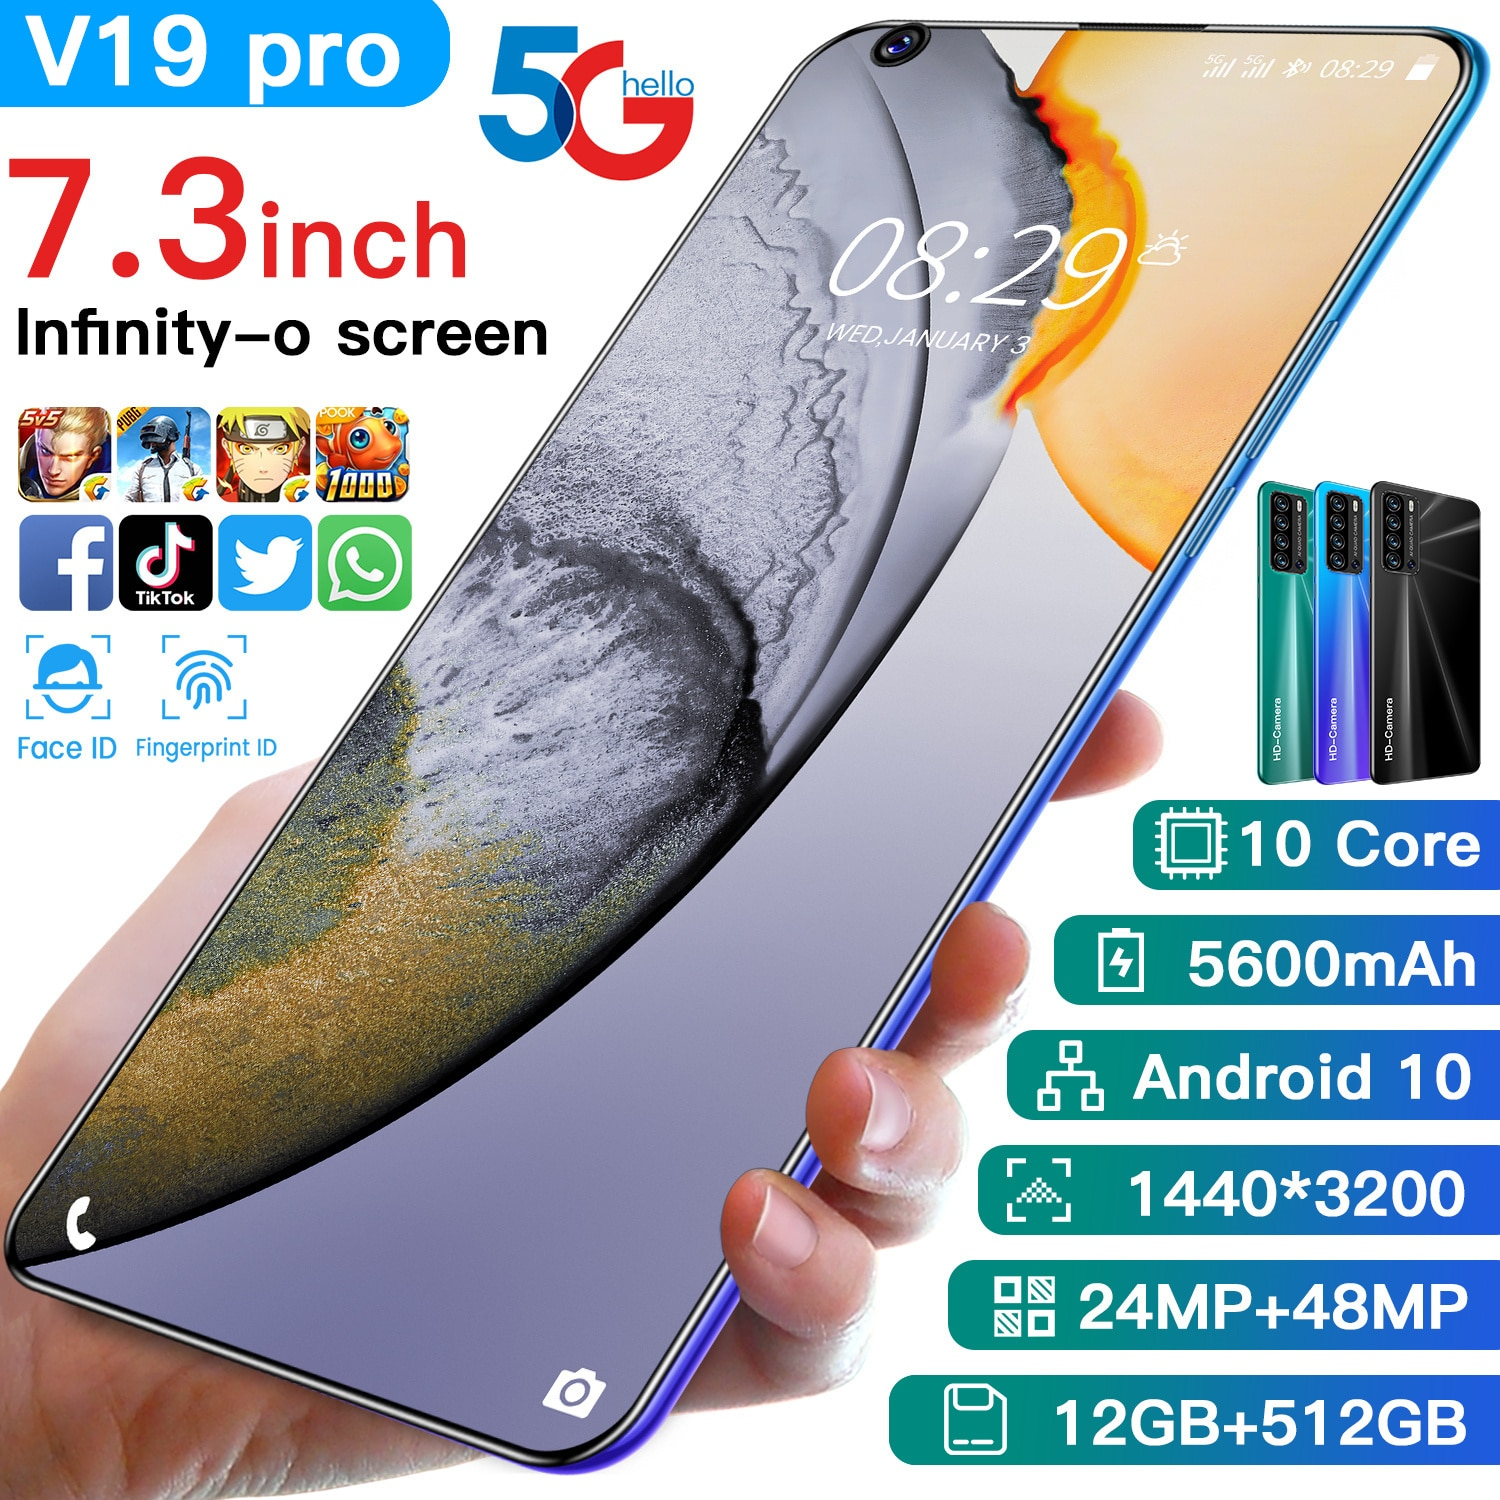 Global Version V19 Pro Smartphone Snapdragon888 12GB RAM 512GB ROM Deca Core 5600mAh 4G 5G 48MP Android11 Undefined Mobile Phone